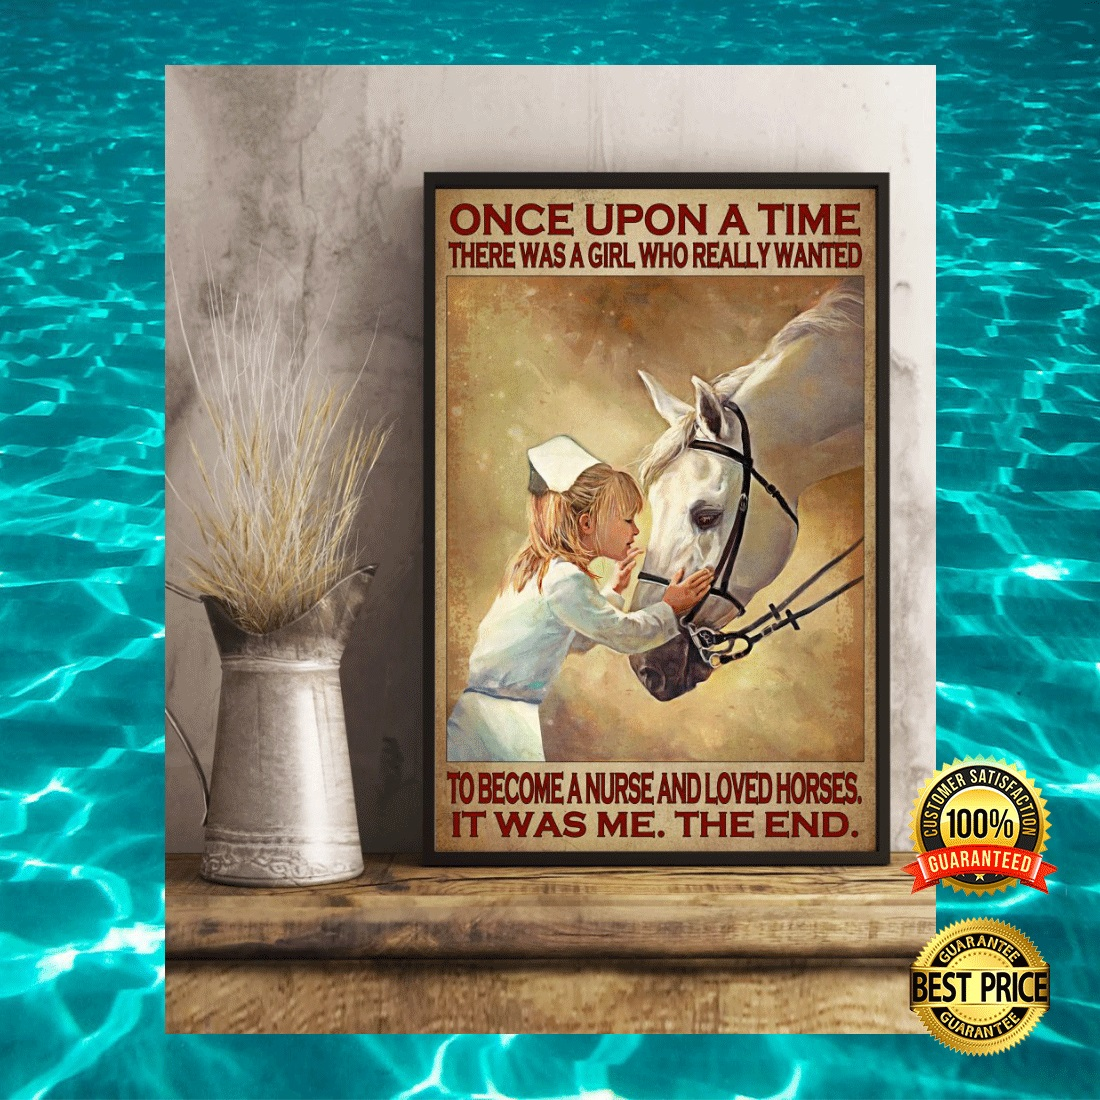 ONCE UPON A TIME THERE WAS A GIRL WHO REALLY WANTED TO BECOME A NURSE AND LOVED HORSES POSTER 6